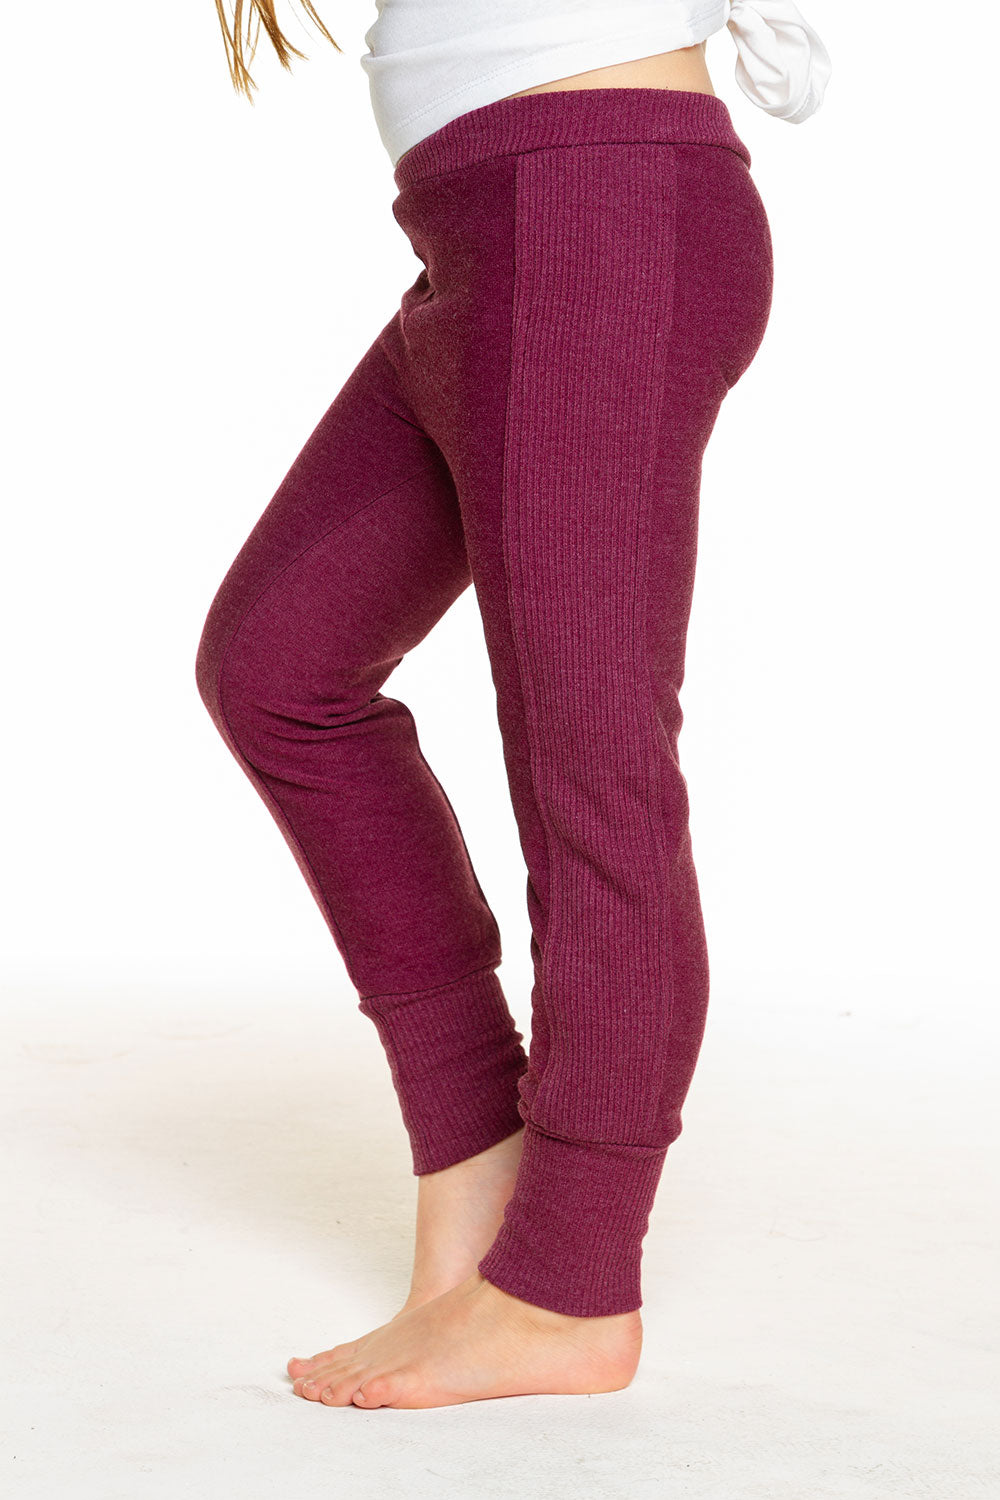 Girls Cozy Knit Rib Panel Legging GIRLS chaserbrand4.myshopify.com